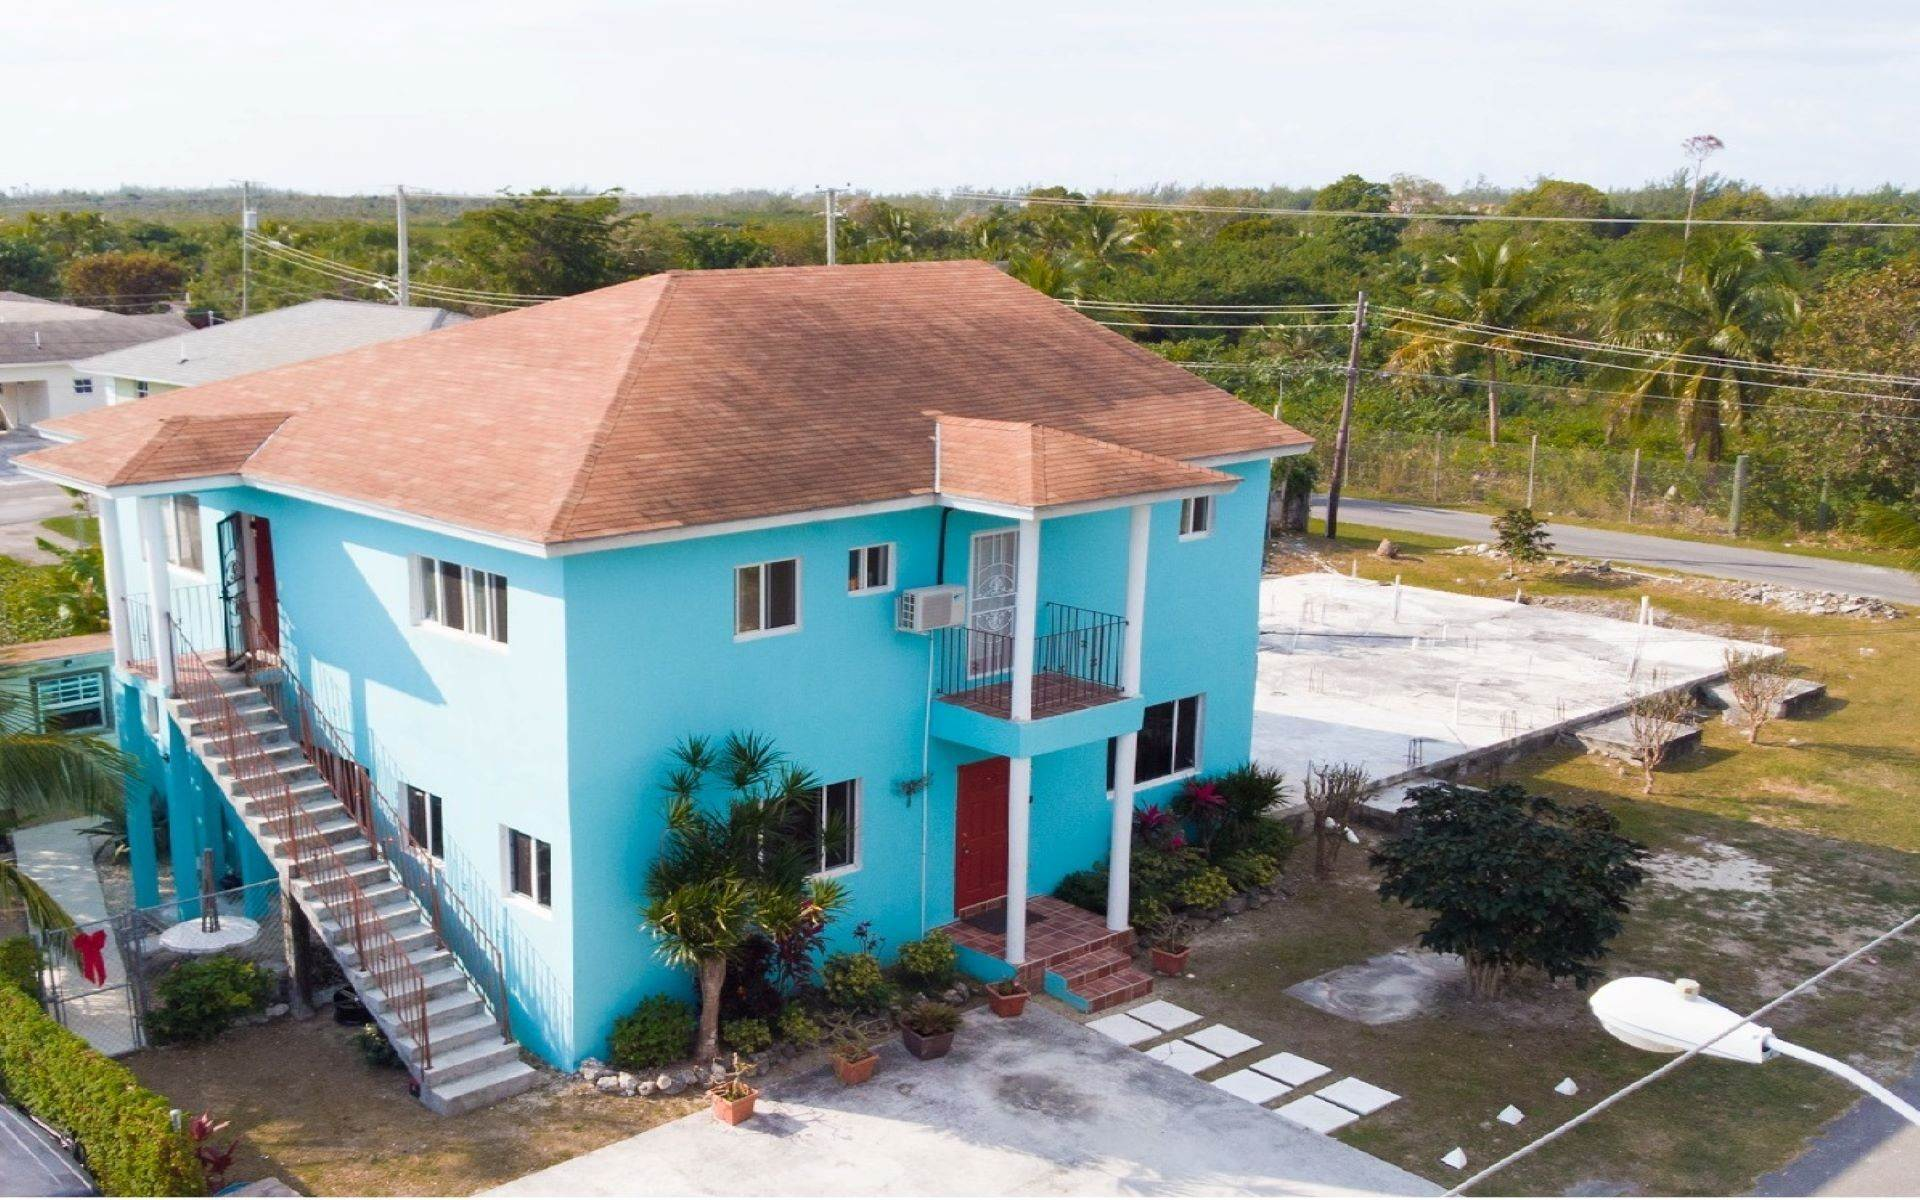 Co-op / Condo for Sale at Investment property - Selling 2 condos and foundation for 3 more! - MLS 43242 Boatswain Hill, Nassau And Paradise Island, Bahamas